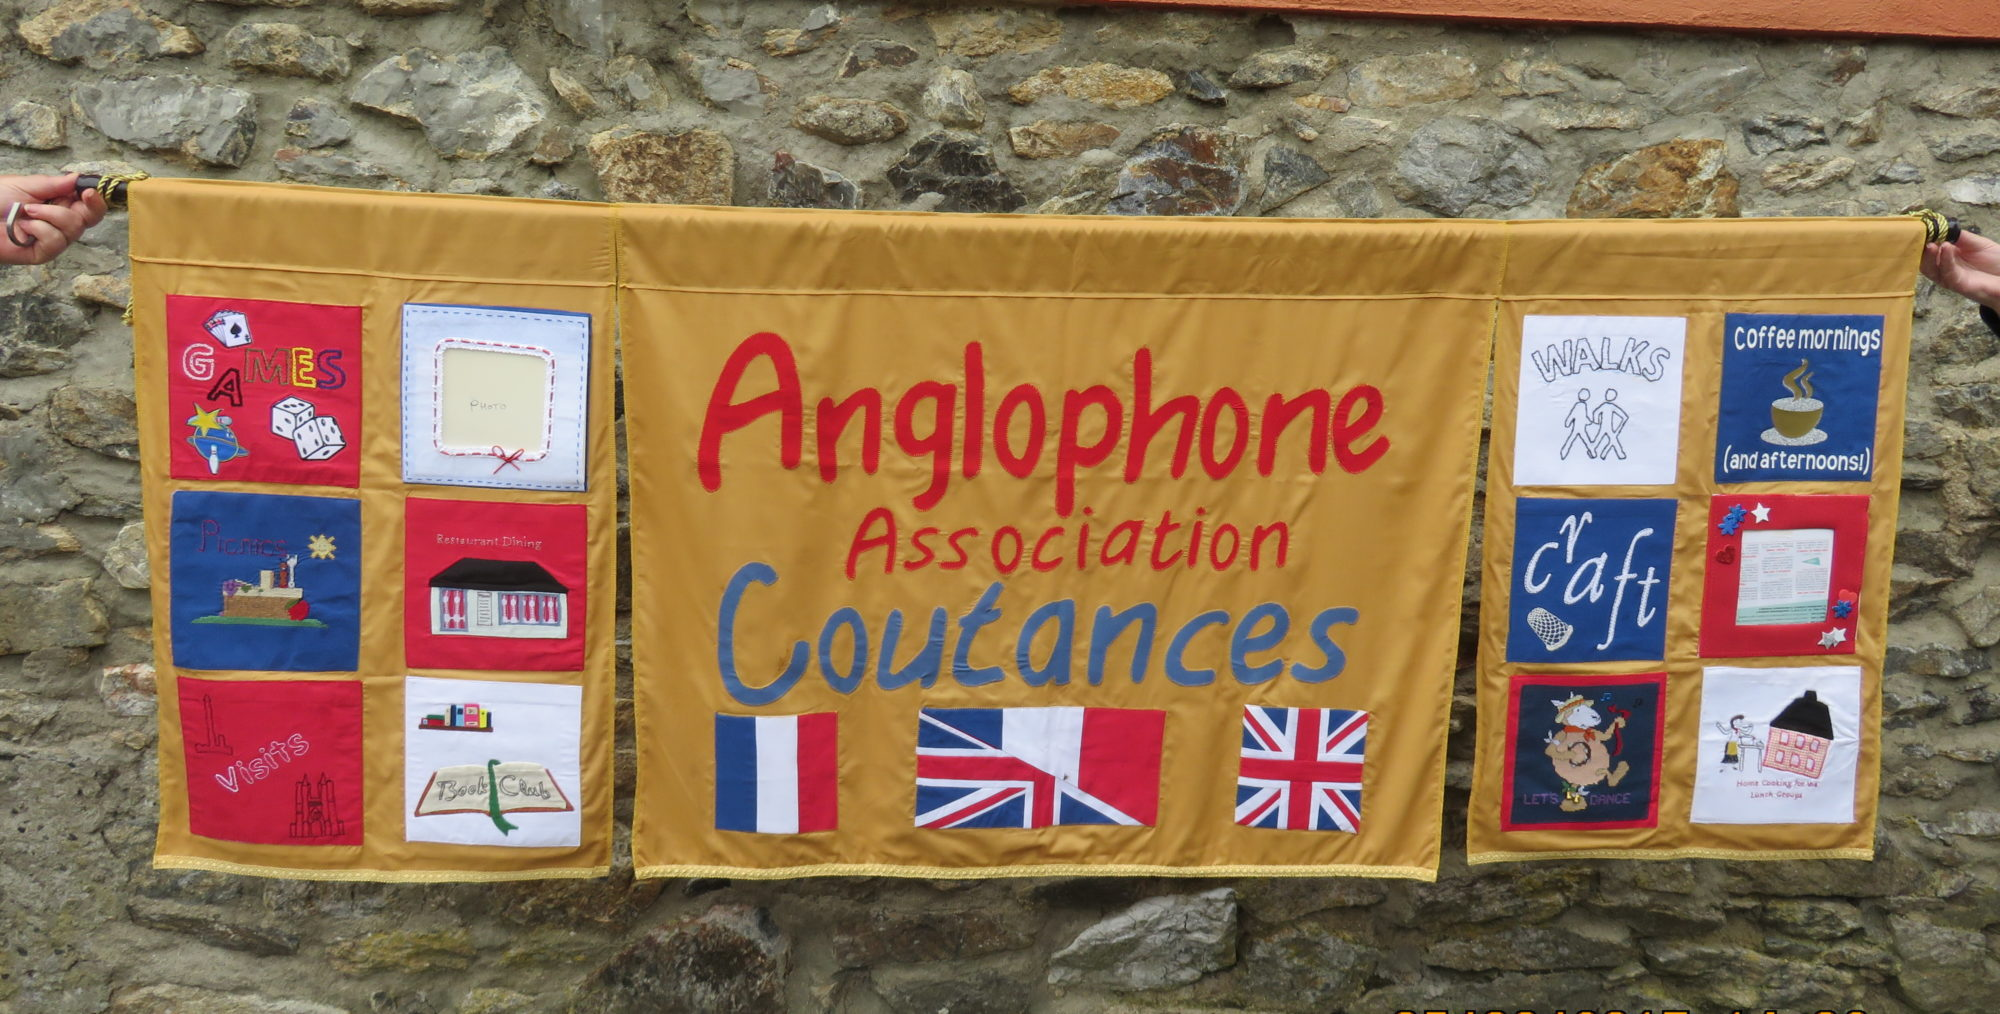 The Anglophone Association of Coutances